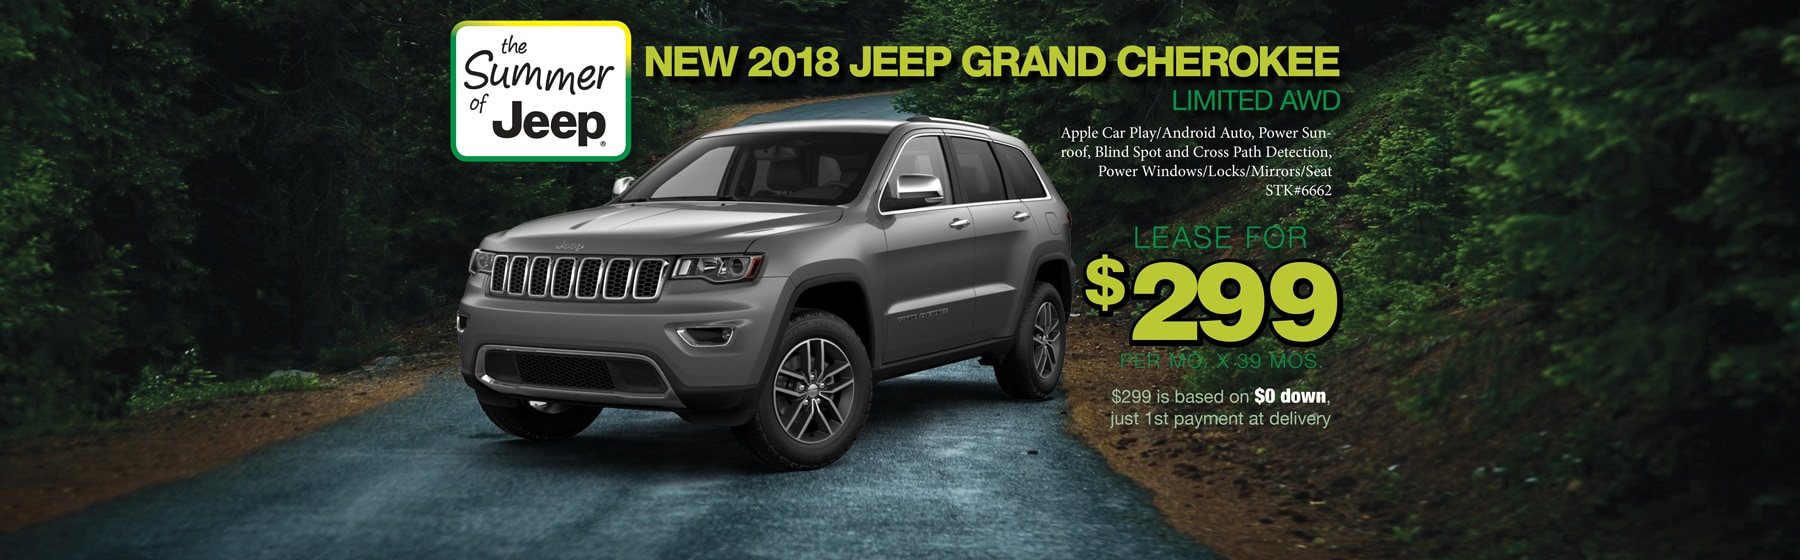 2018 Jeep Grand Cherokee Limited AWD